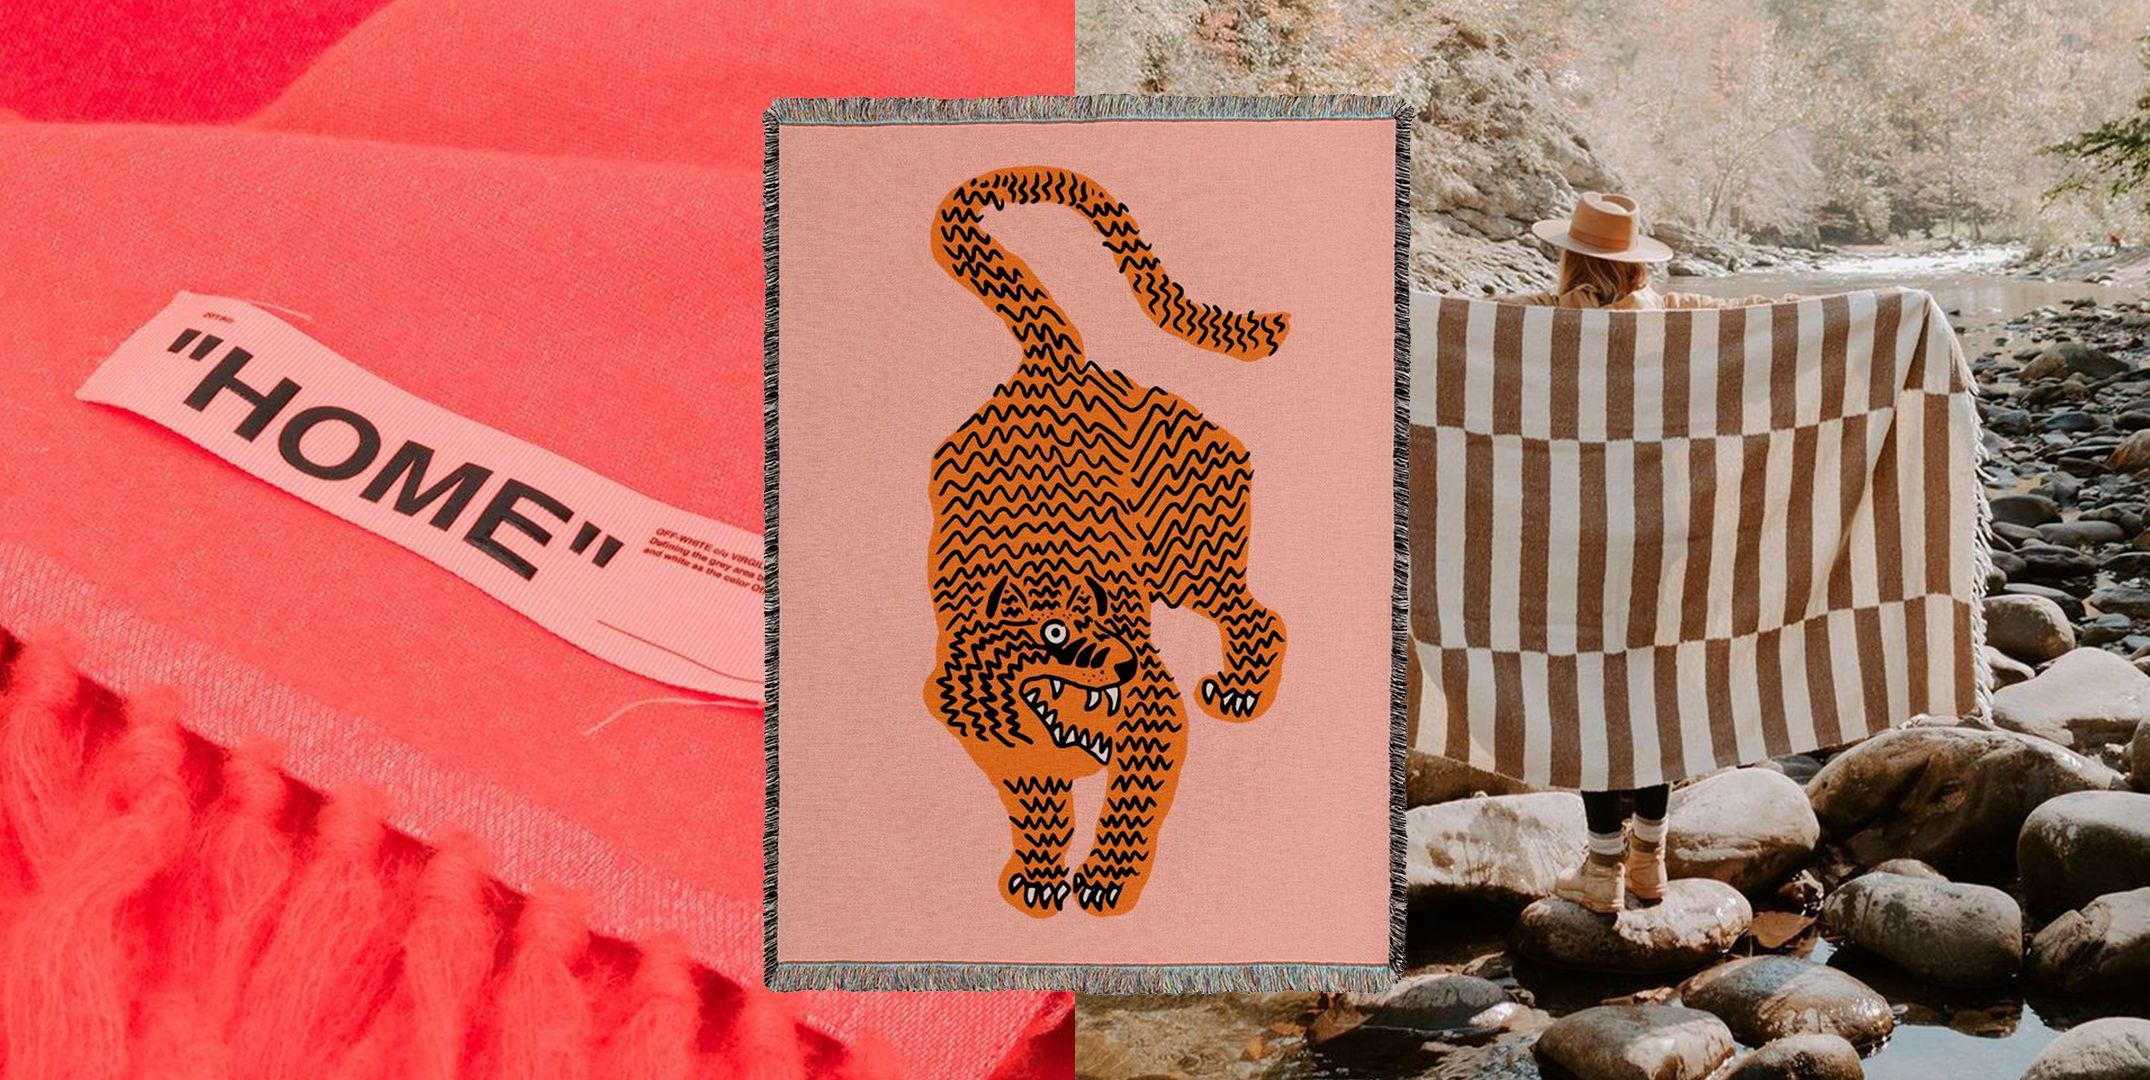 15 Of The Cutest Throw Blankets To Make Your Home Super Cozy And Aesthetic Flipboard